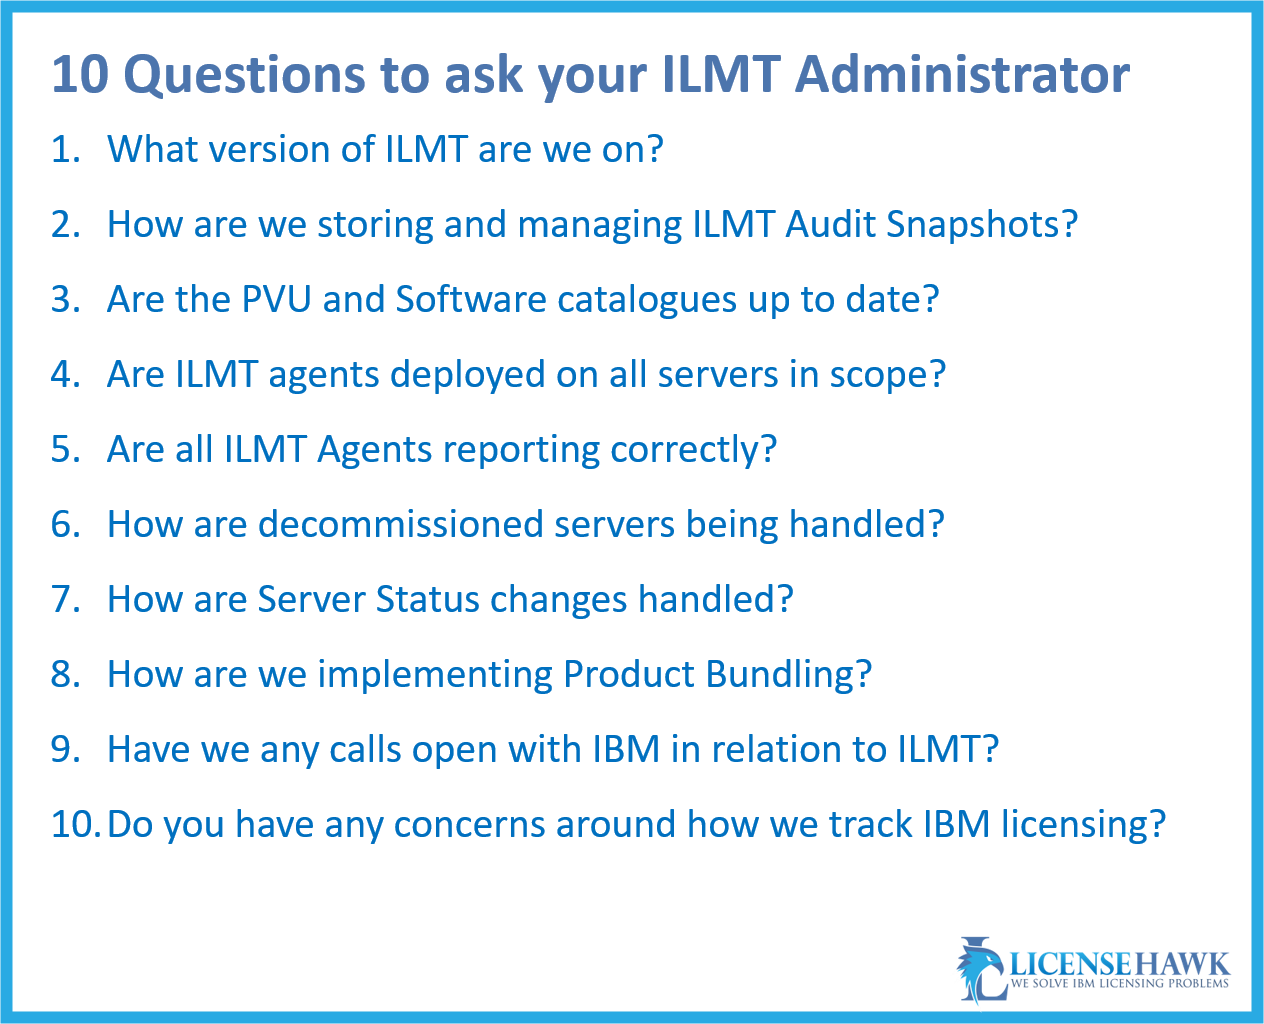 10 questions to ask your ILMT administrator